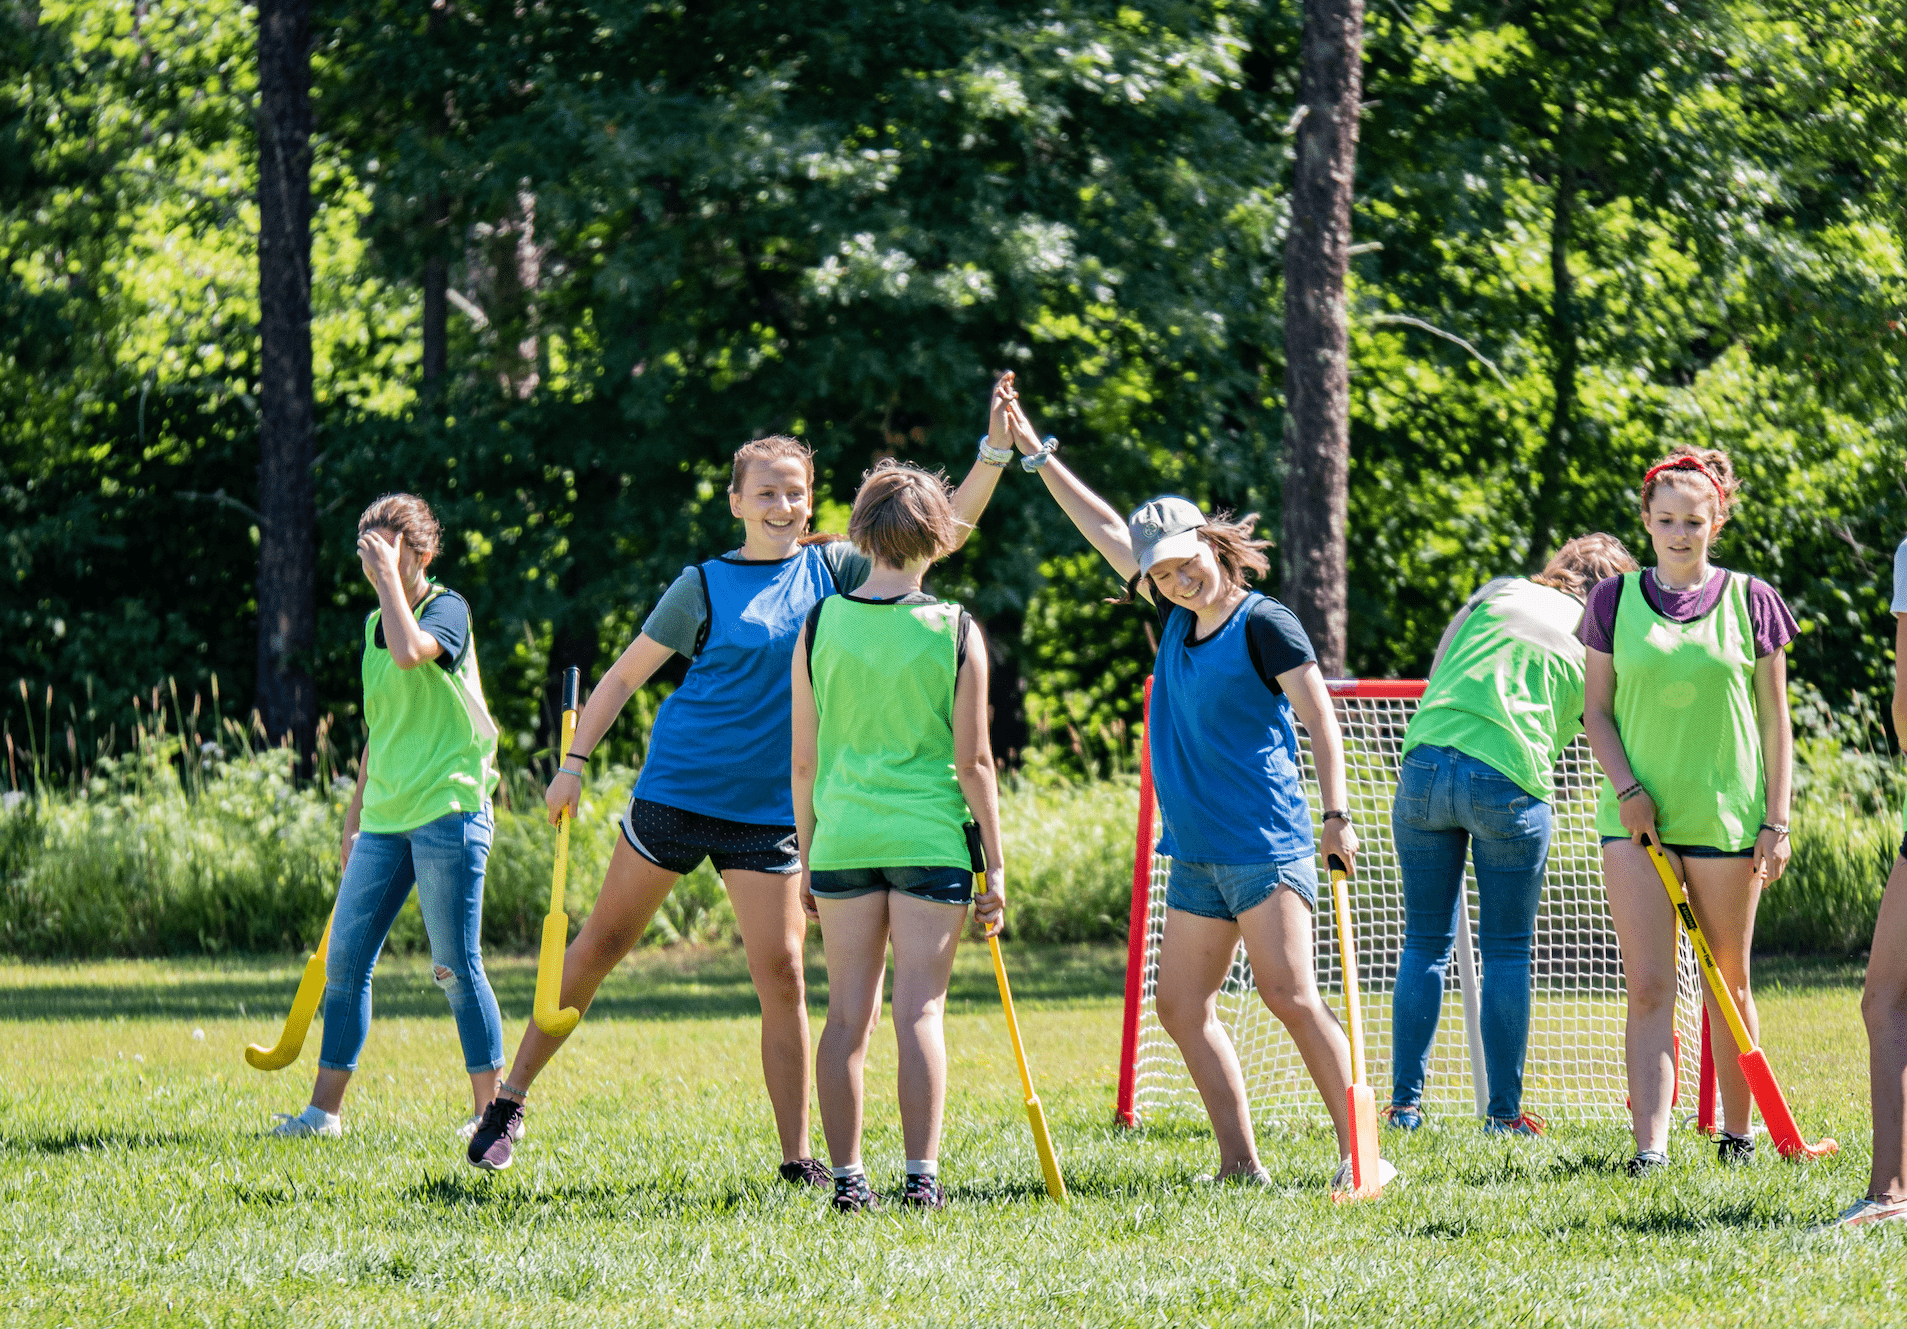 Villagers enjoy a bit of victory during a field hockey game.